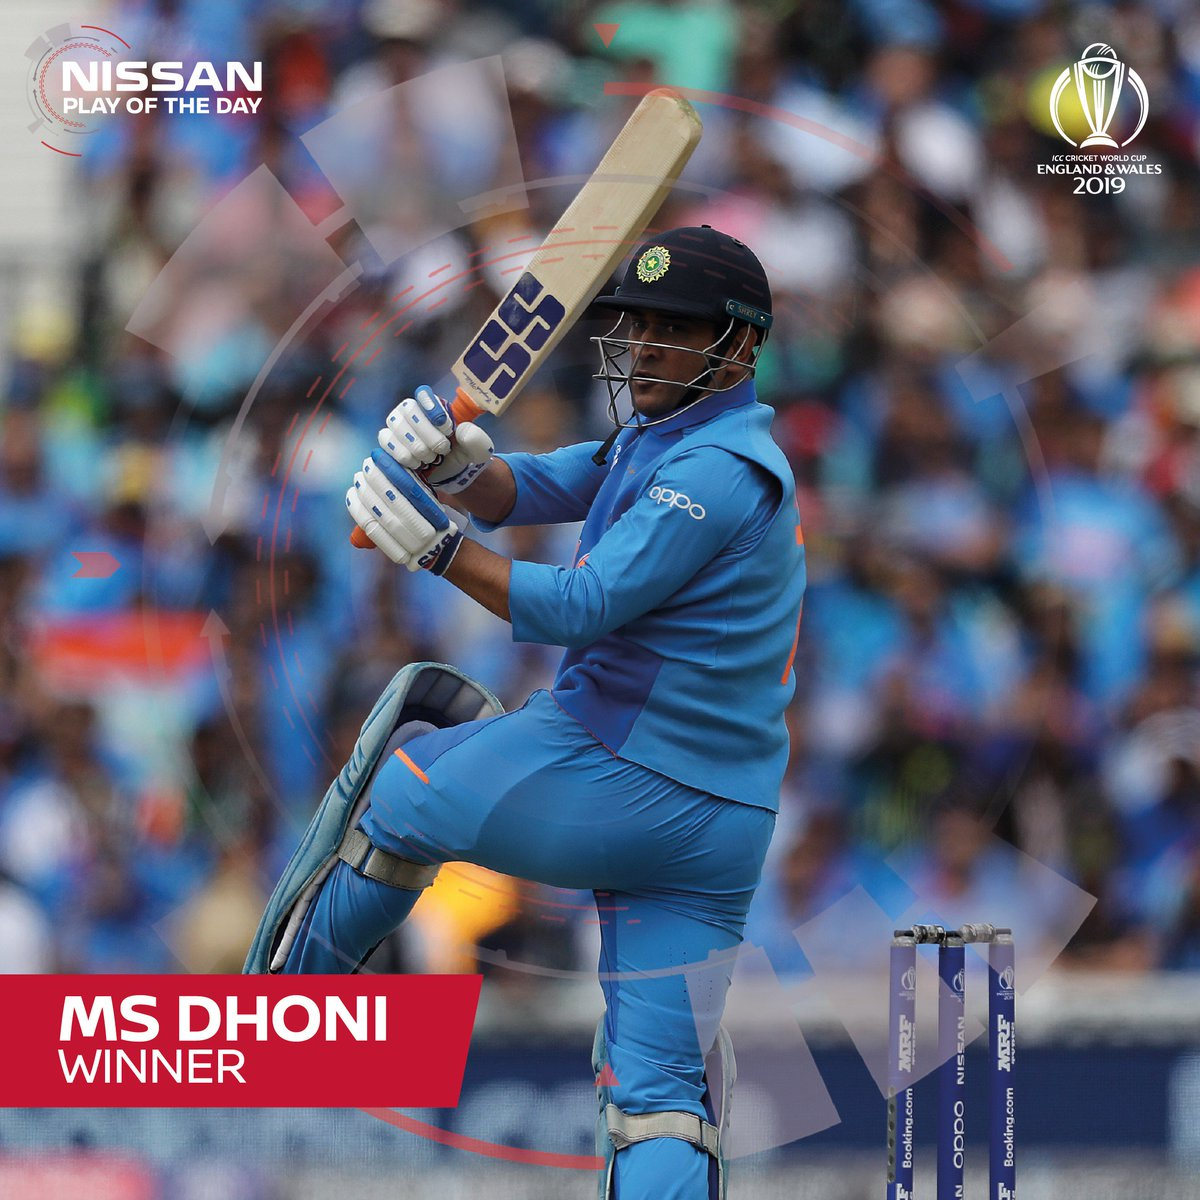 """The votes are in! MS Dhoni's enormous six was your favourite from yesterday's #INDvAUS clash :D""""That's huge, absolutely huge! Kohli, at the other end, acknowledges what the ex-skipper has done.""""#CWC19 #sweepthenation"""